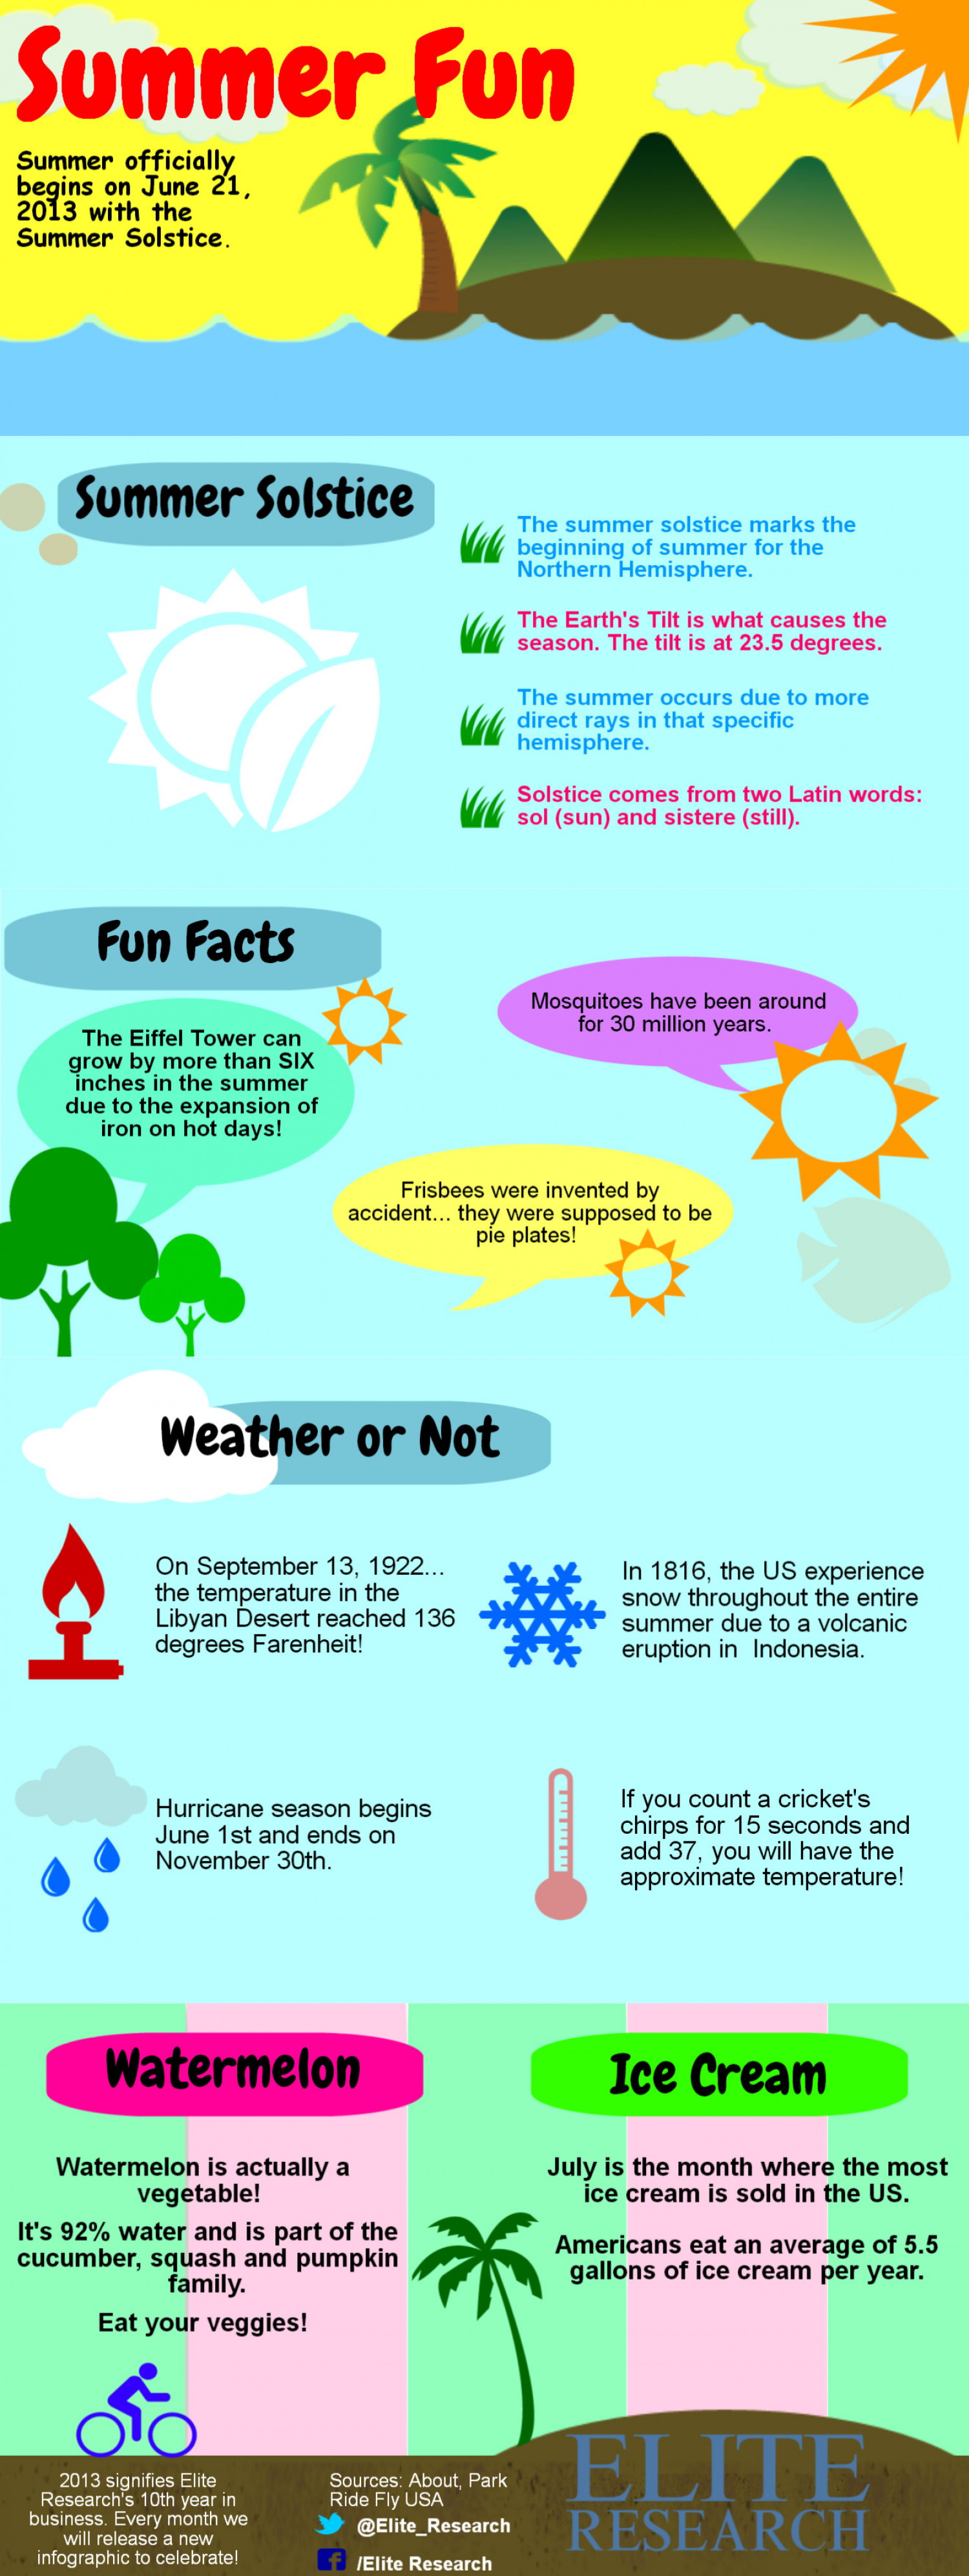 Summer Fun at Elite Research Infographic